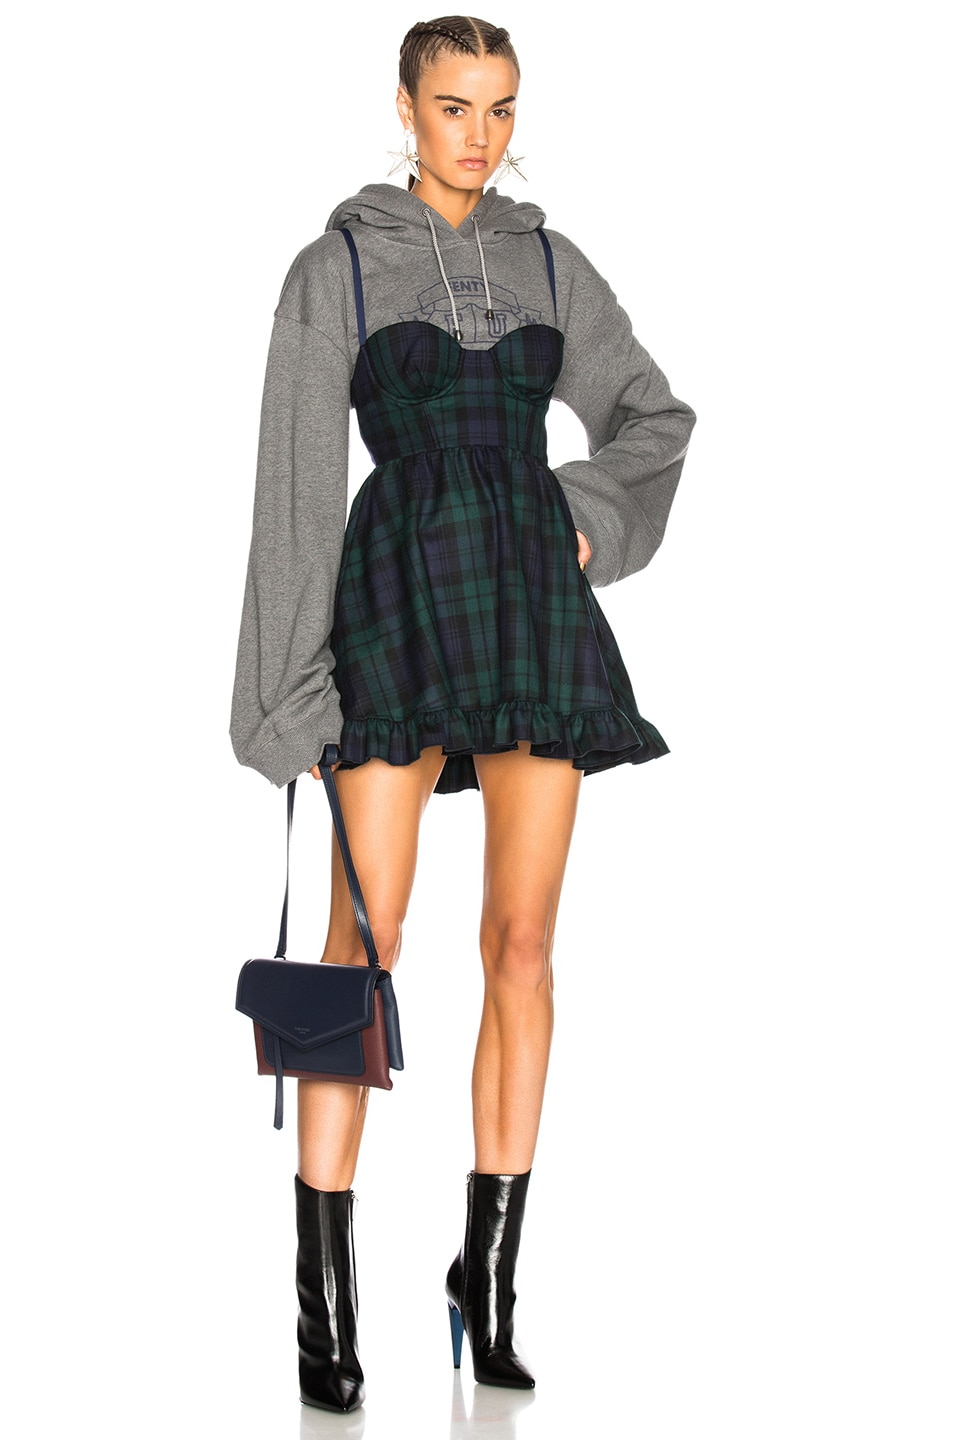 Fenty by Puma Dress with Hoodie in Gray,Checkered & Plaid,Green,Blue